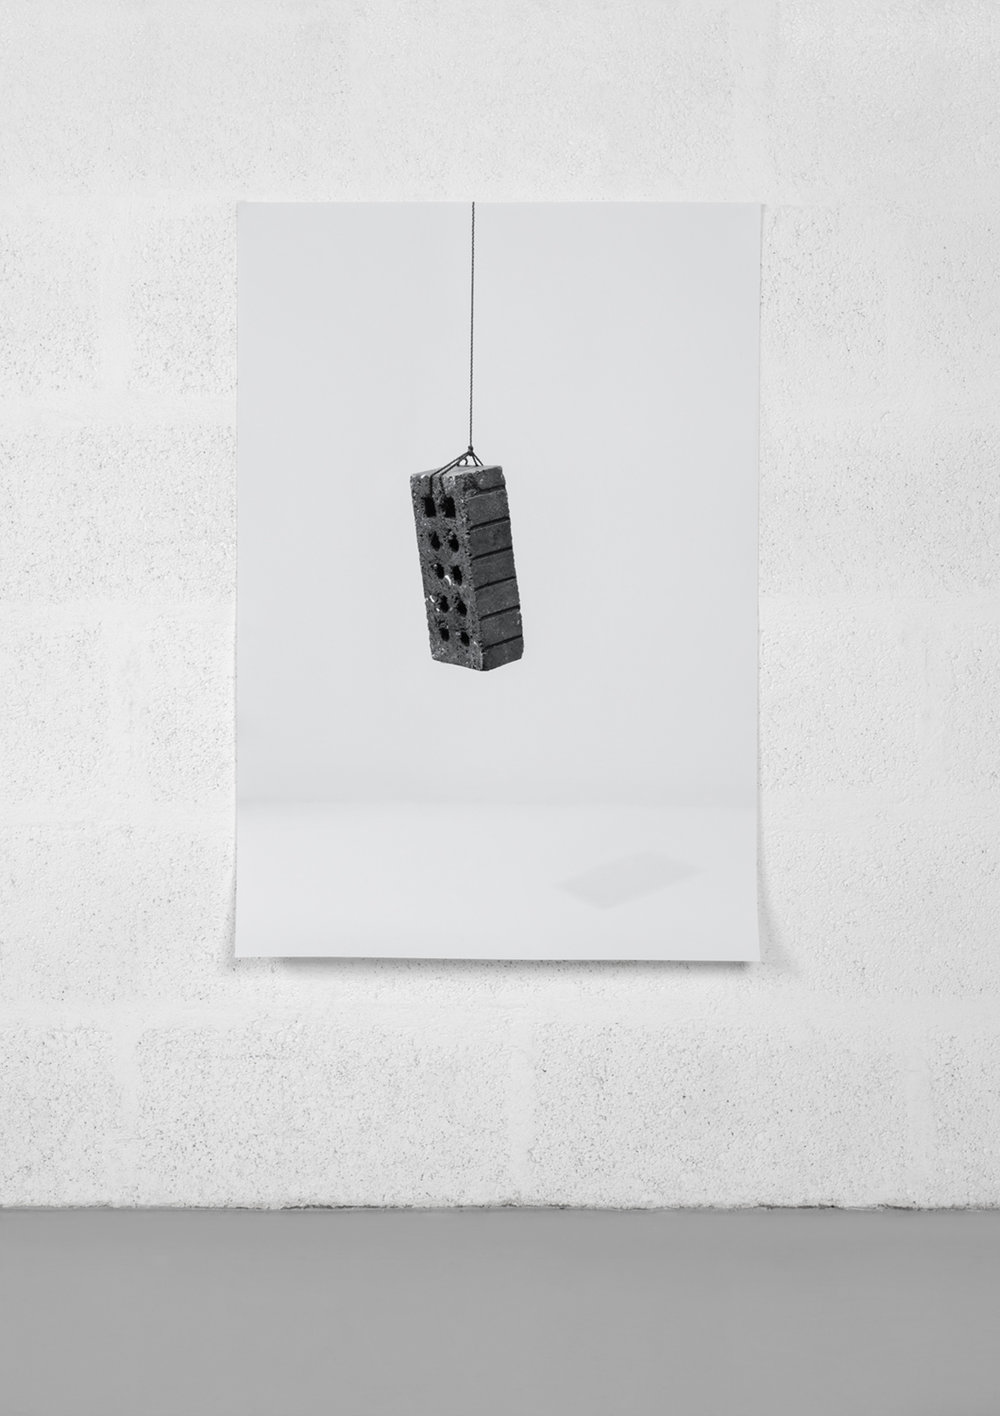 Untitled (Brick- Suspended)